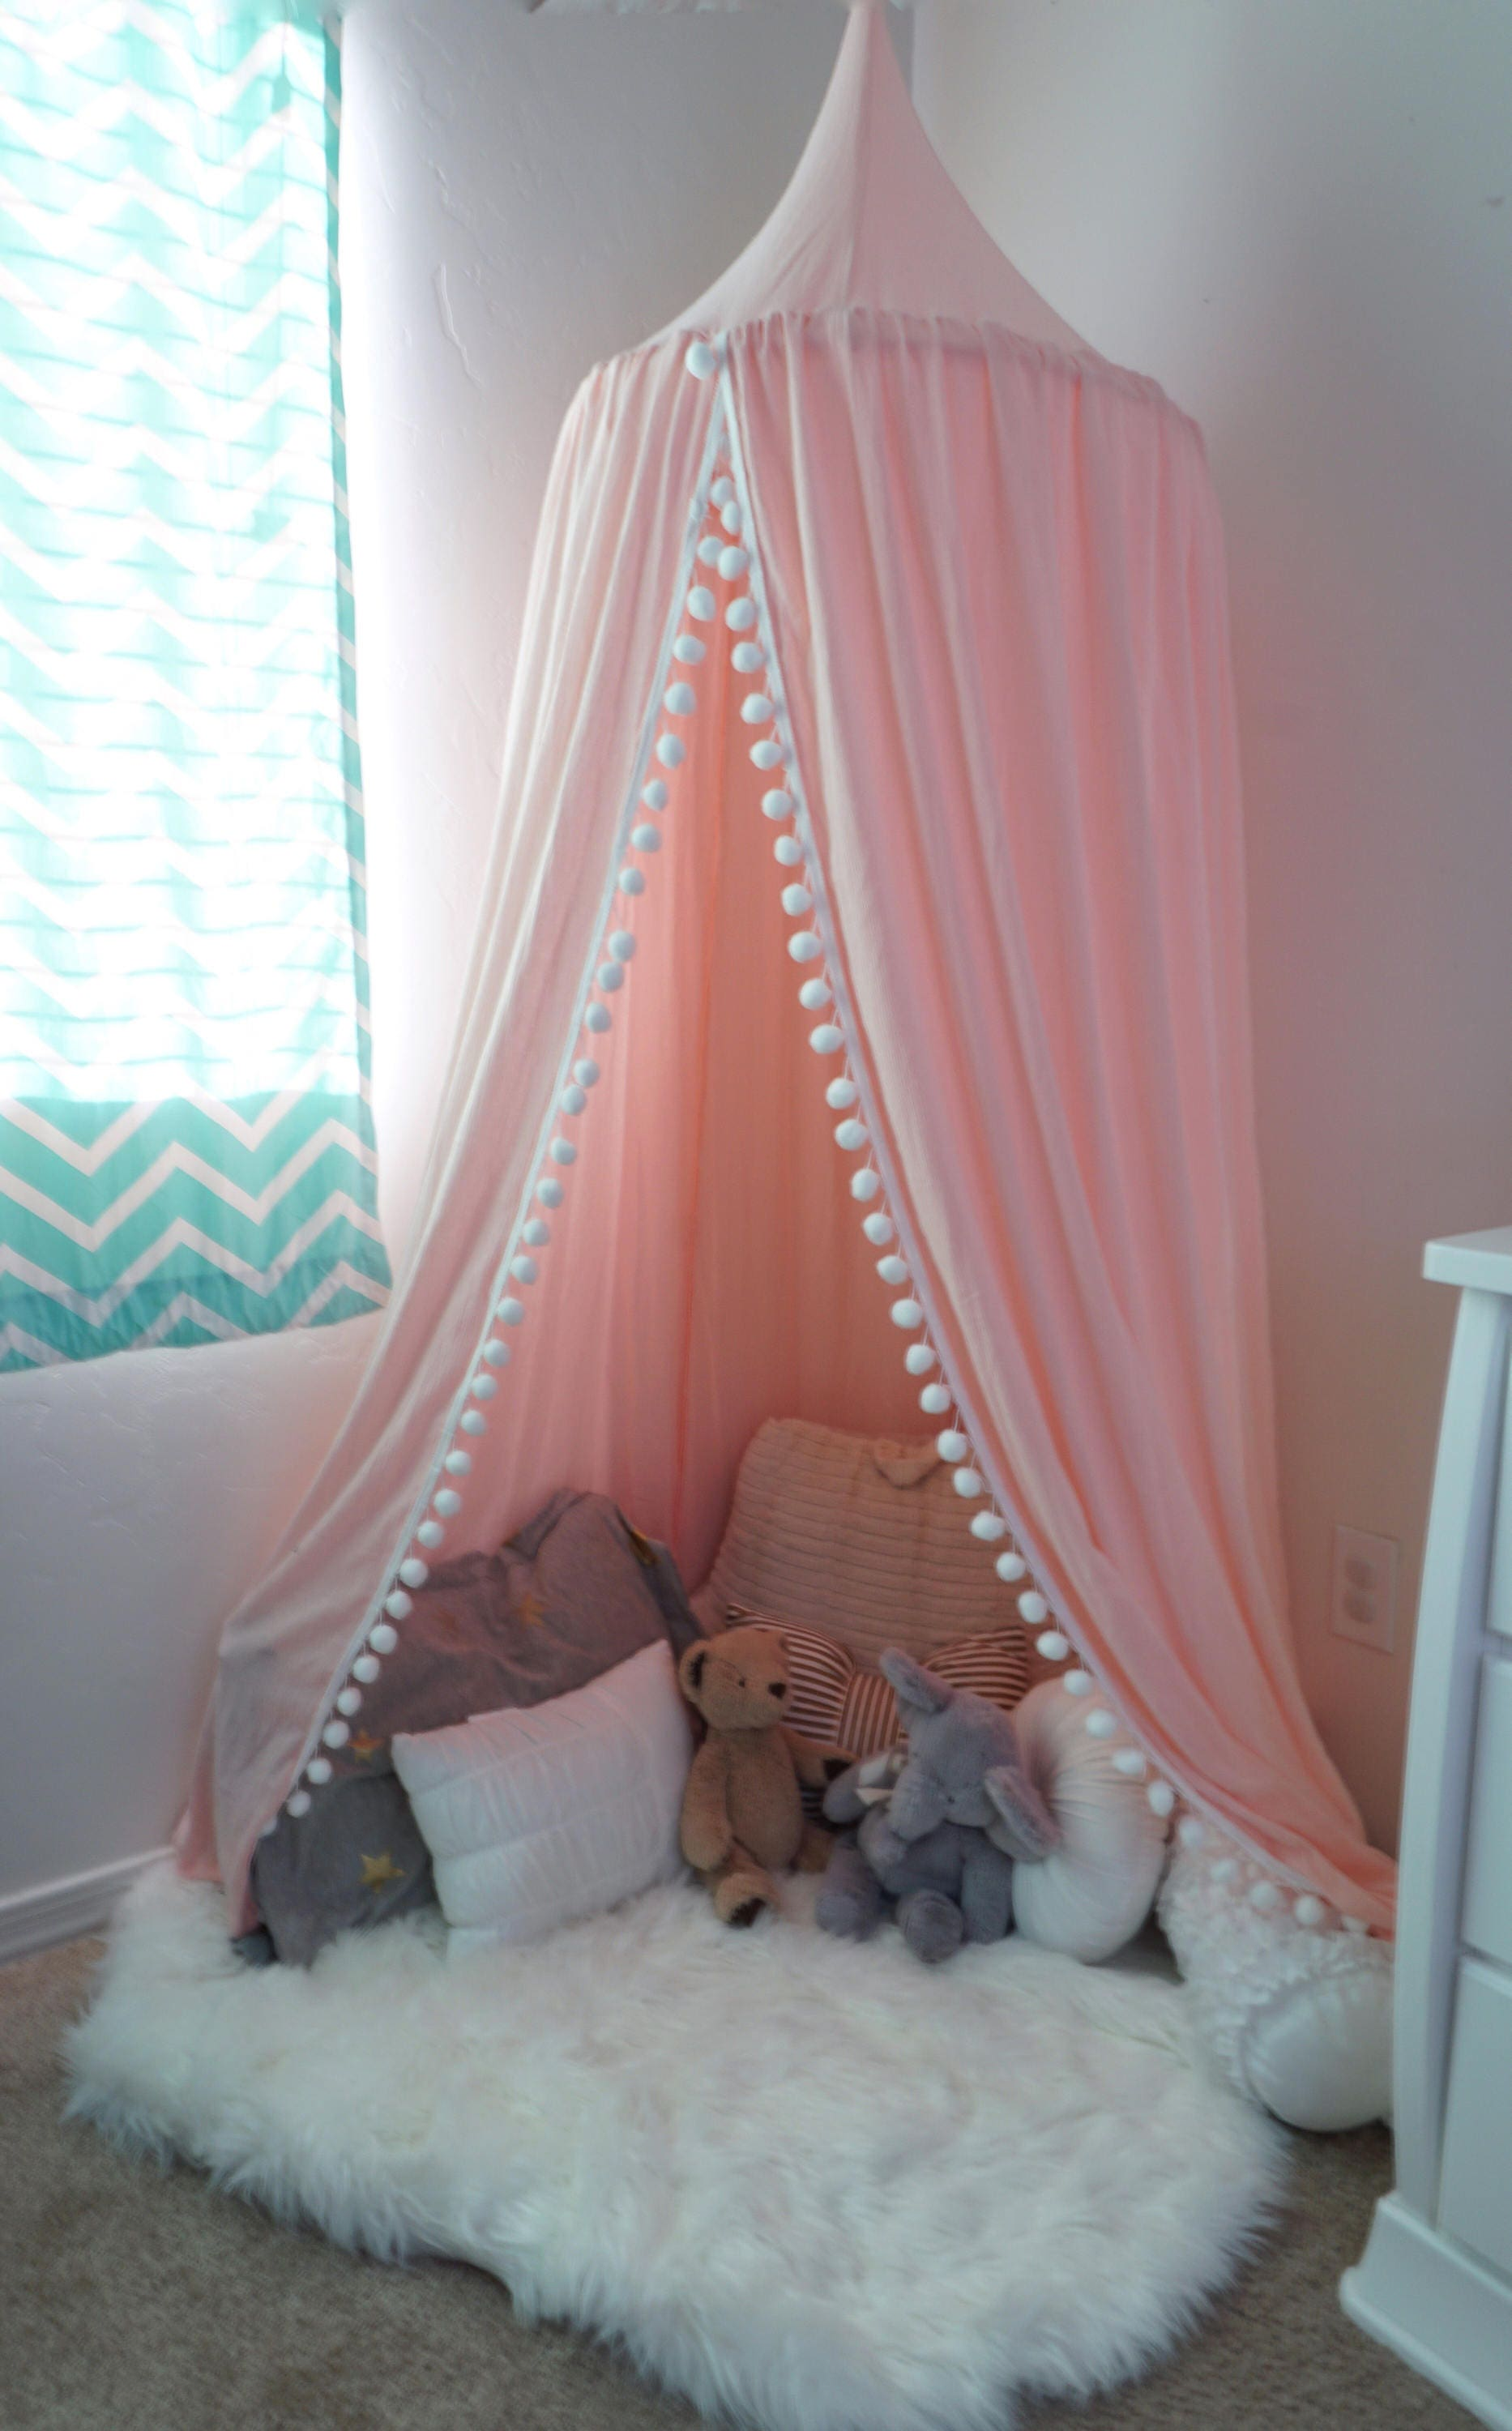 Pompom Play canopy in blush pink cotton / hanging tent/bed canopy/ hanging canopy & Pompom Play canopy in blush pink cotton / hanging tent/bed canopy ...